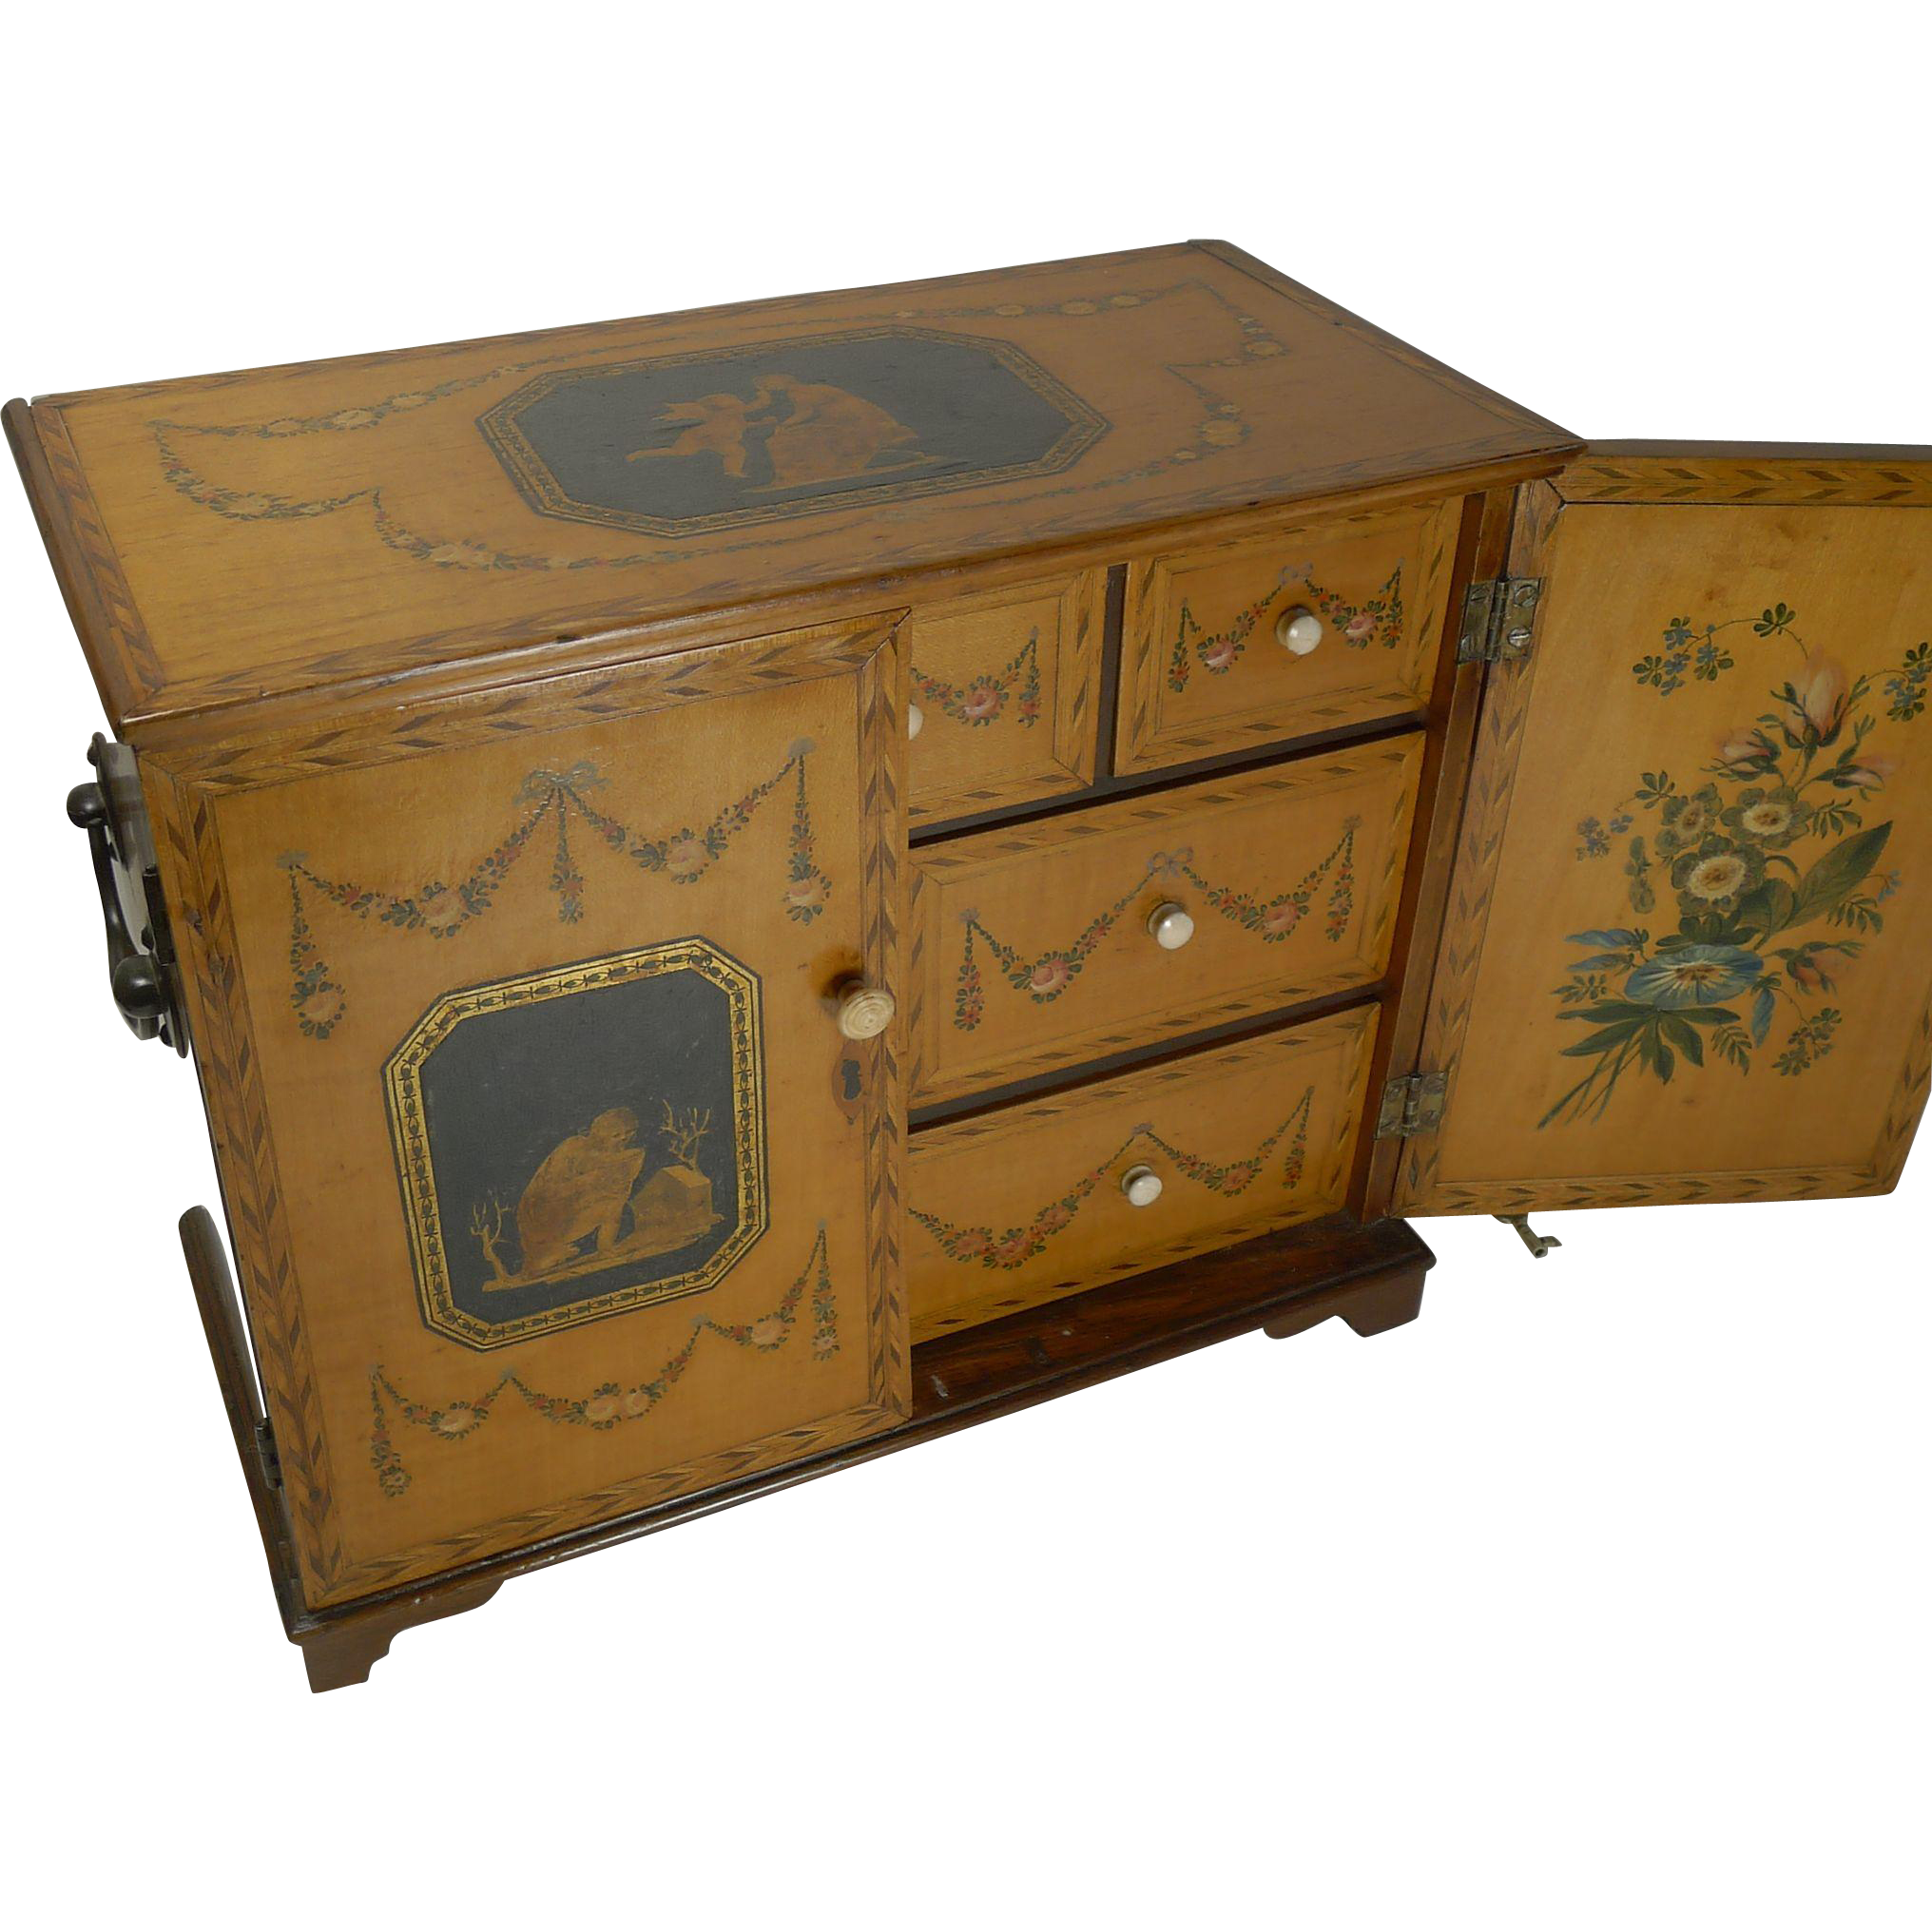 Magnificent English Regency Jewelry Cabinet - Hand Painted c.1820